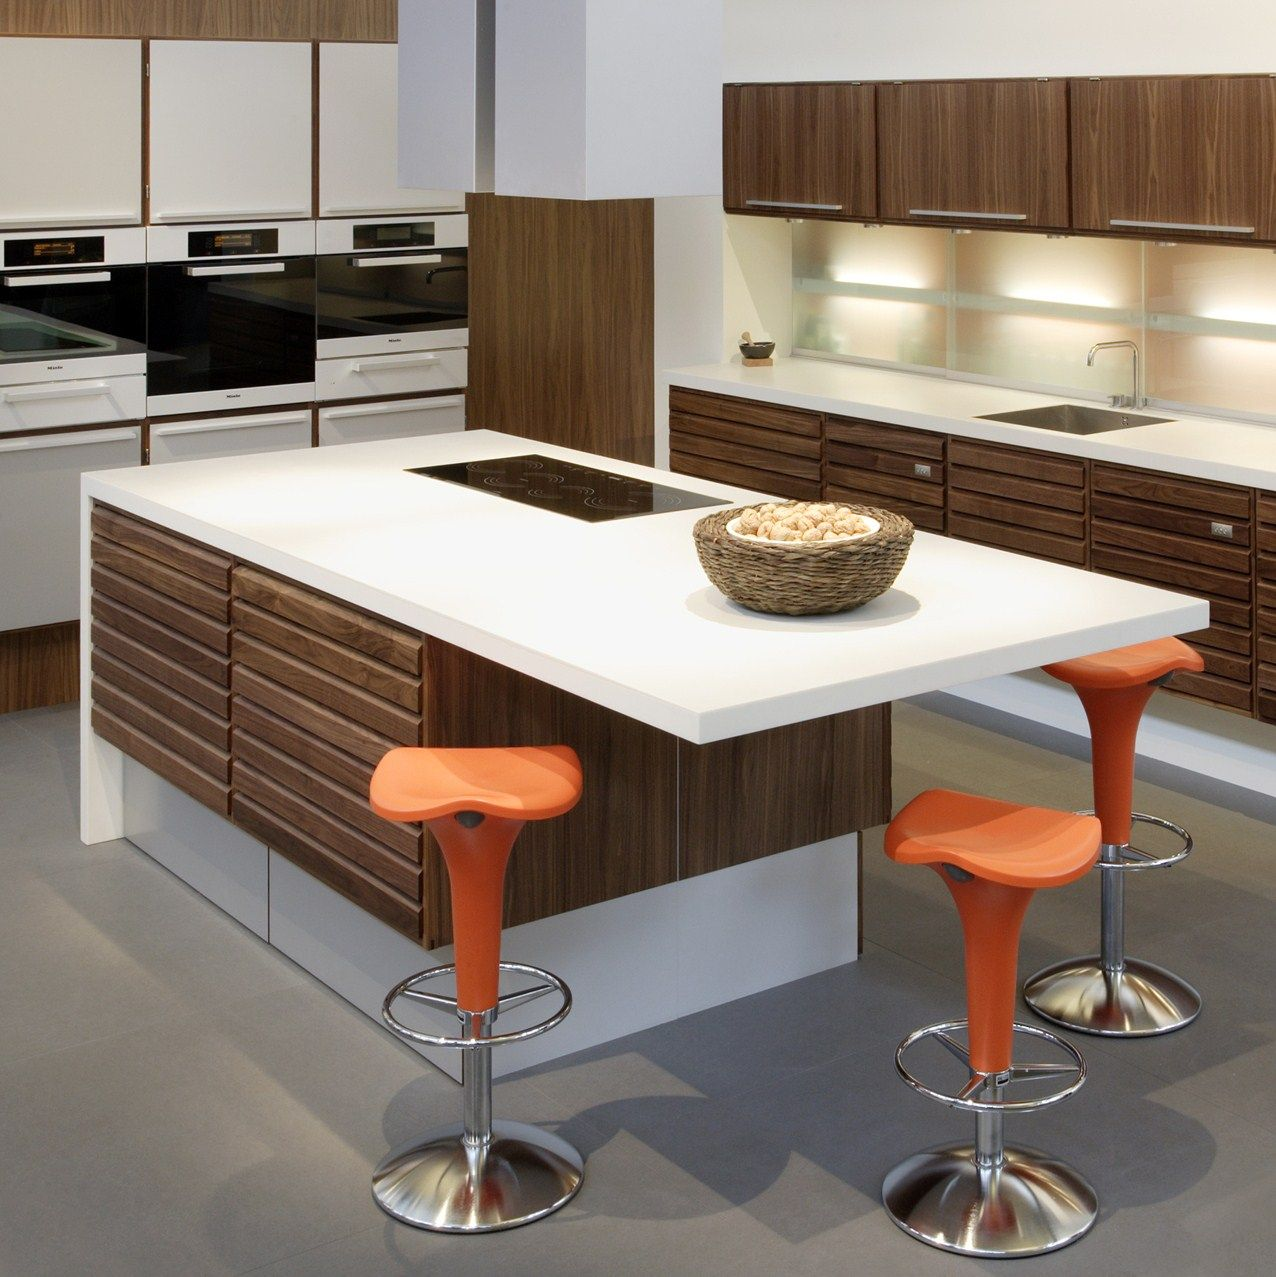 images about corian on pinterest: corian kitchen top